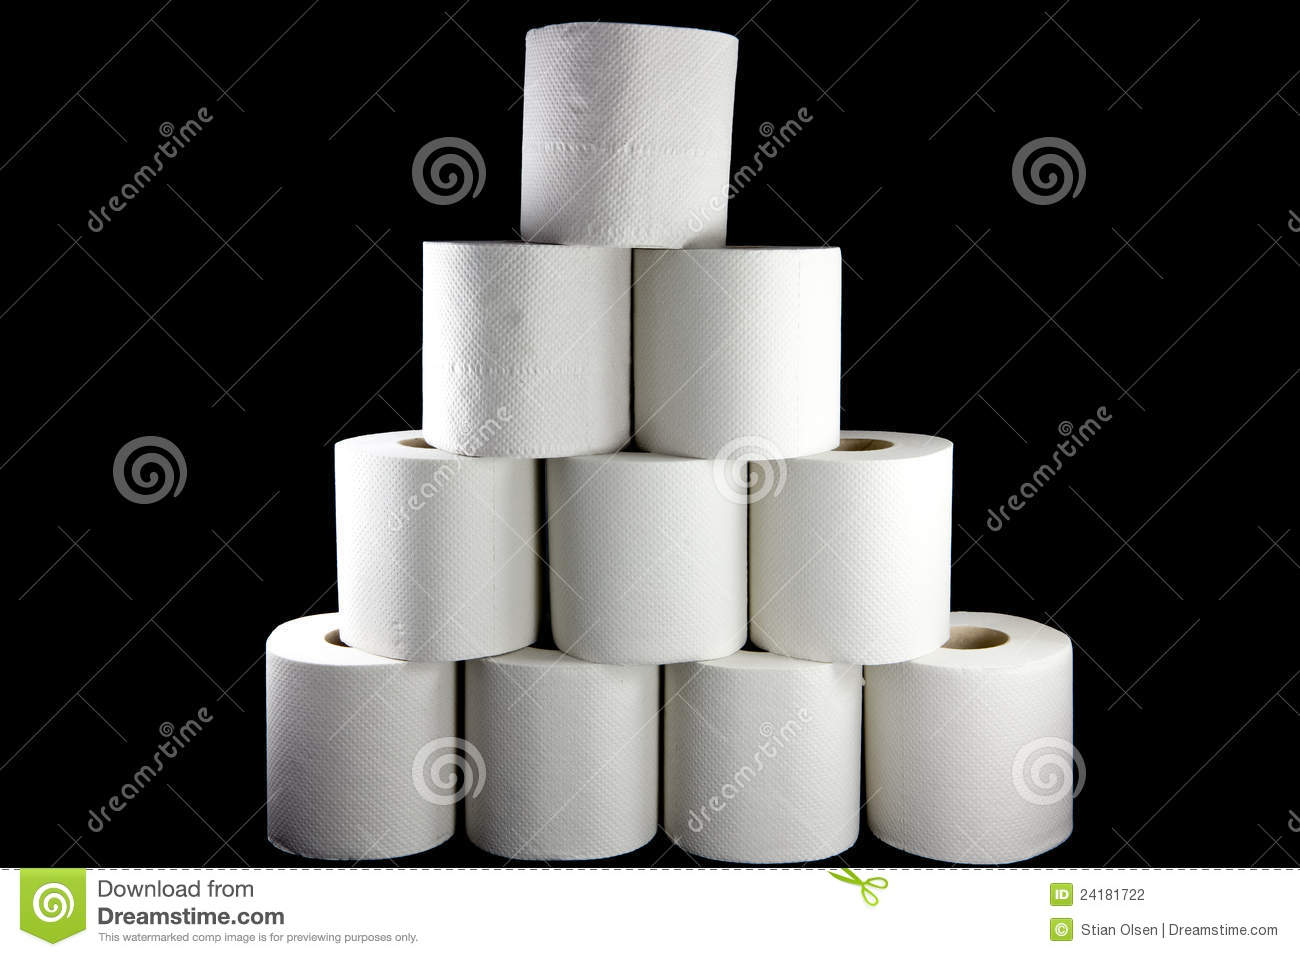 Picture of a bunch of toilet paper rolls formed as a pyramid.